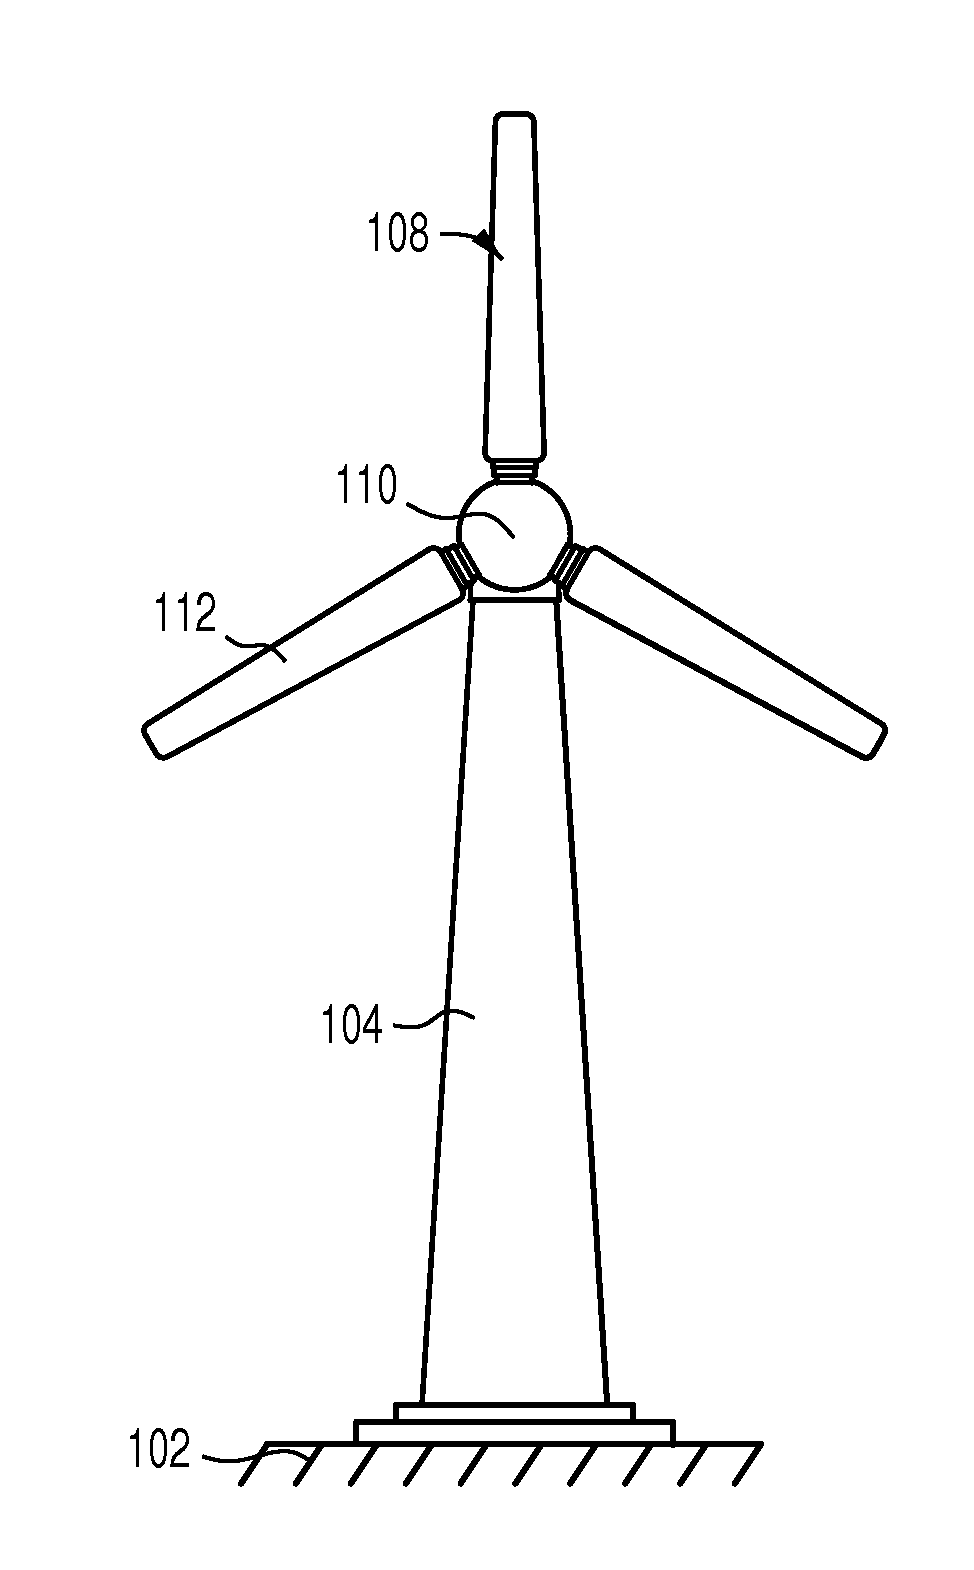 patent us20130017096 - reducing radar interference from wind turbines